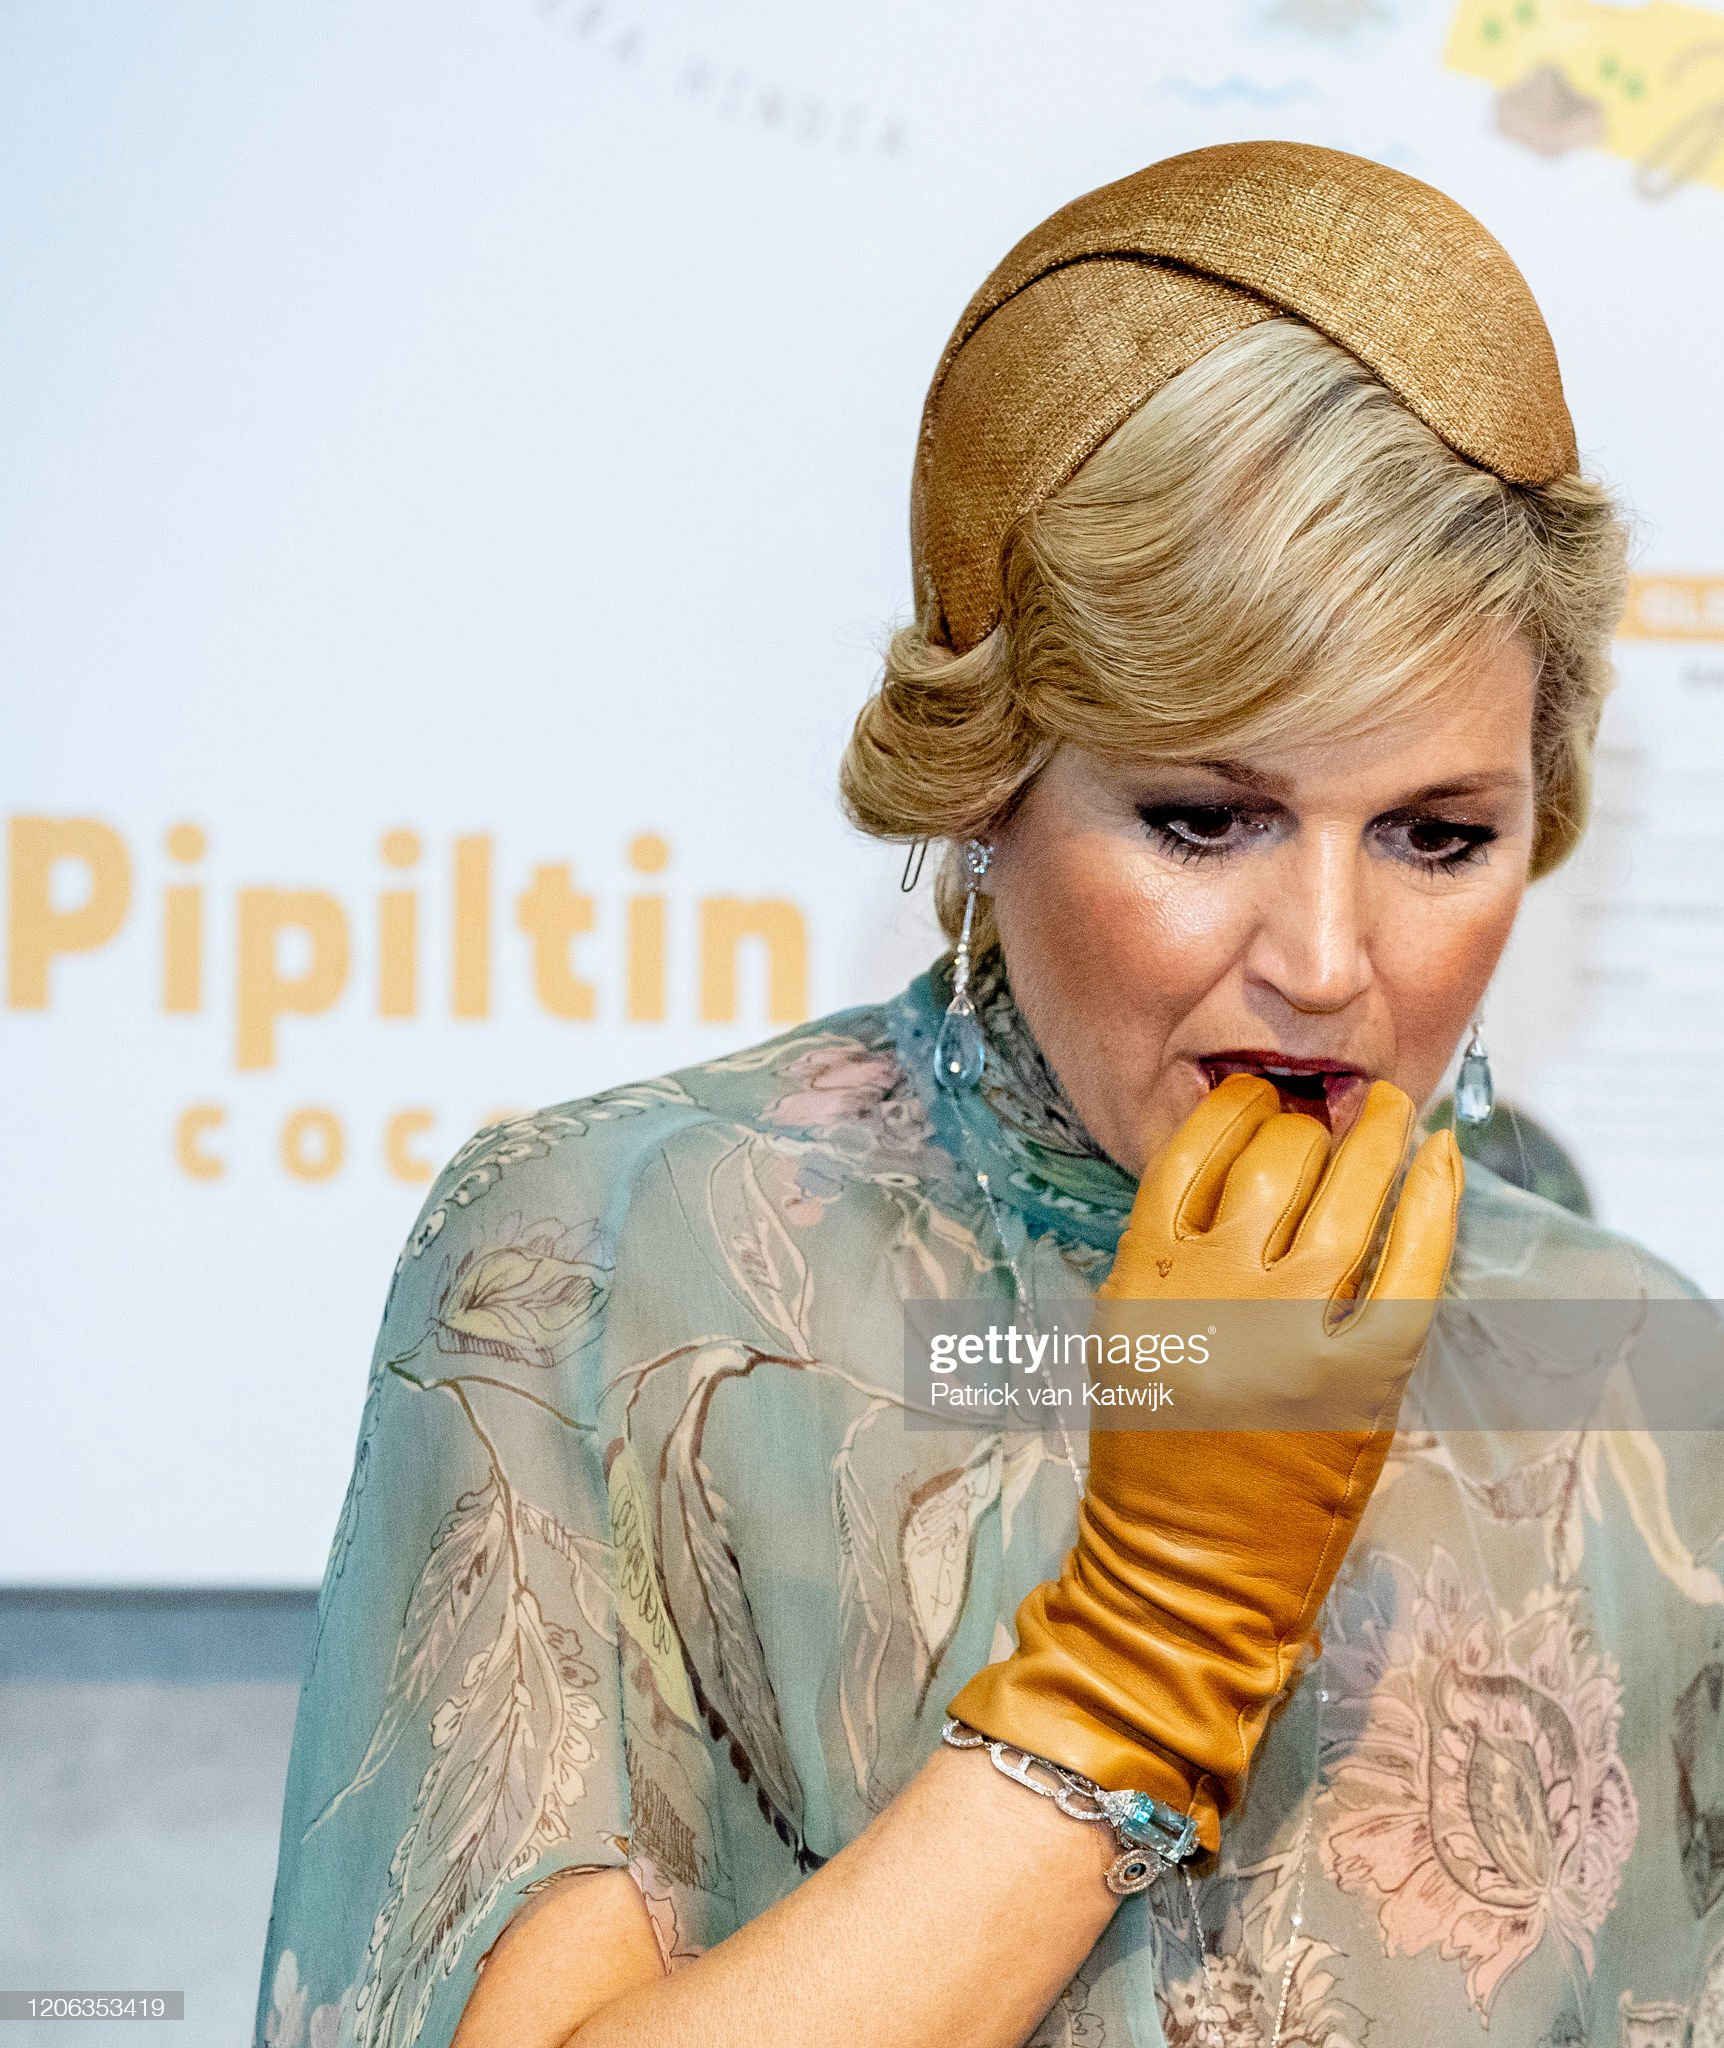 https://media.gettyimages.com/photos/queen-maxima-of-the-netherlands-visit-pipiltin-chocolate-factory-on-picture-id1206353419?s=2048x2048